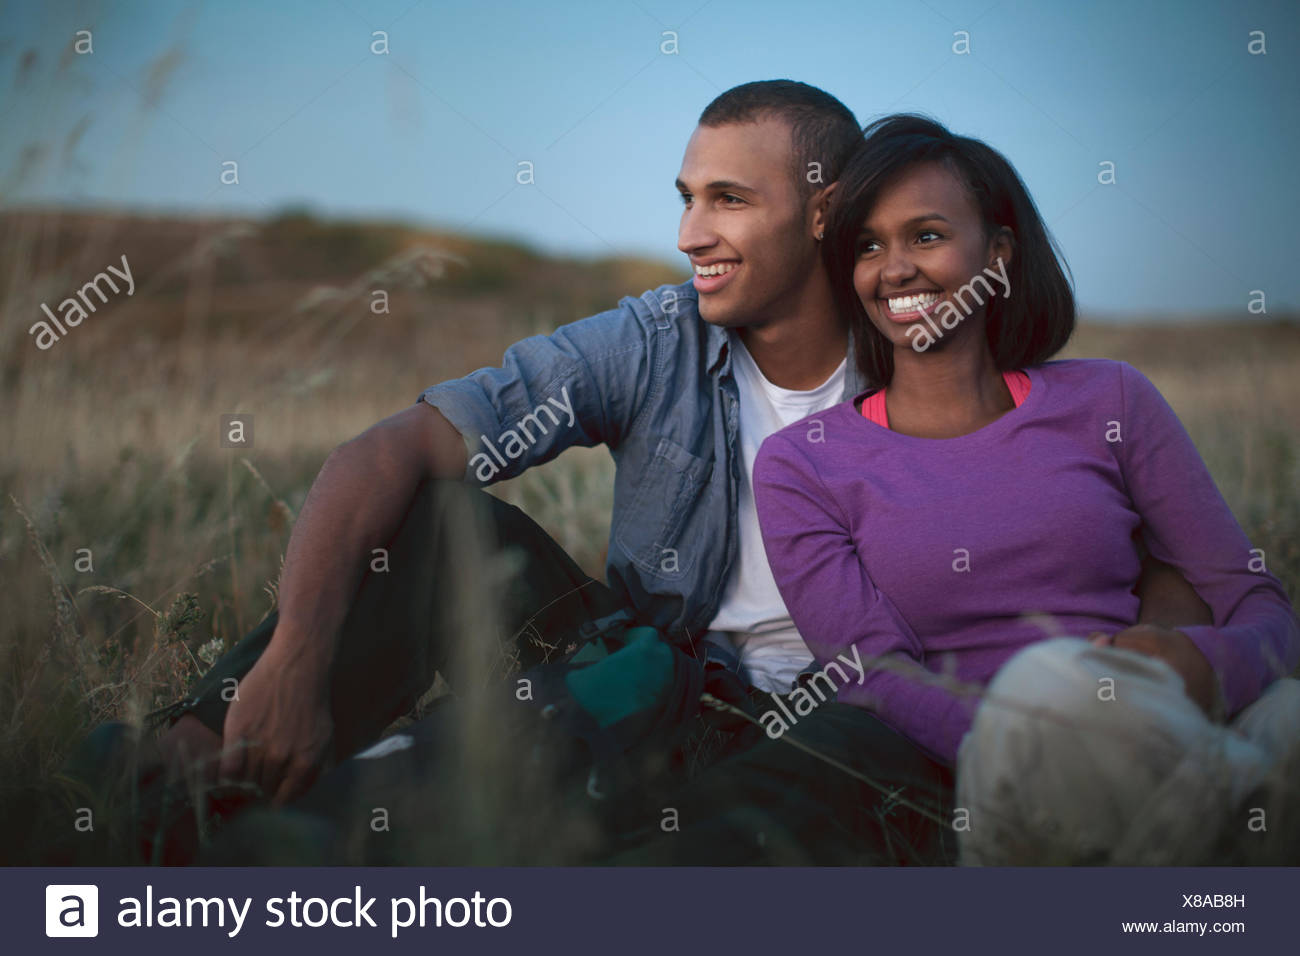 Couple relaxing in field together at dusk. - Stock Image